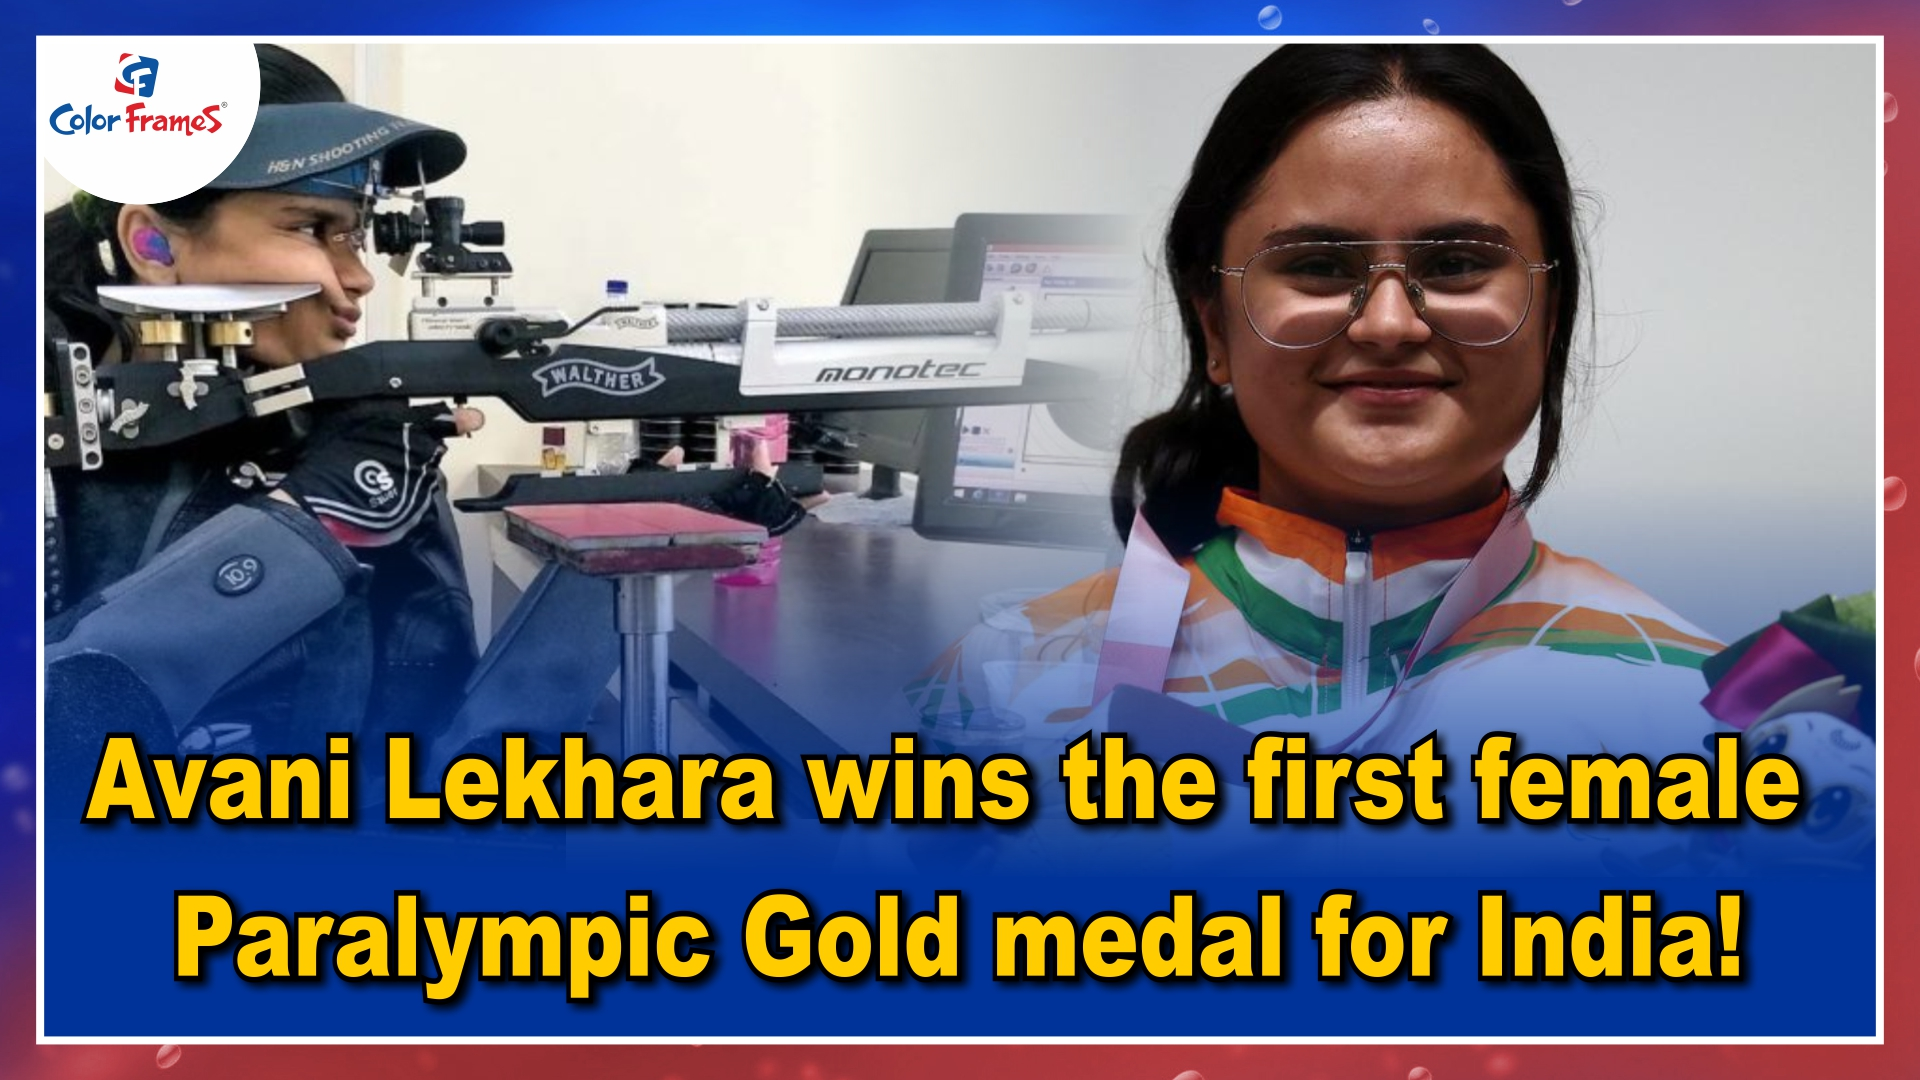 Avani Lekhara wins the first female Paralympic Gold medal for India!